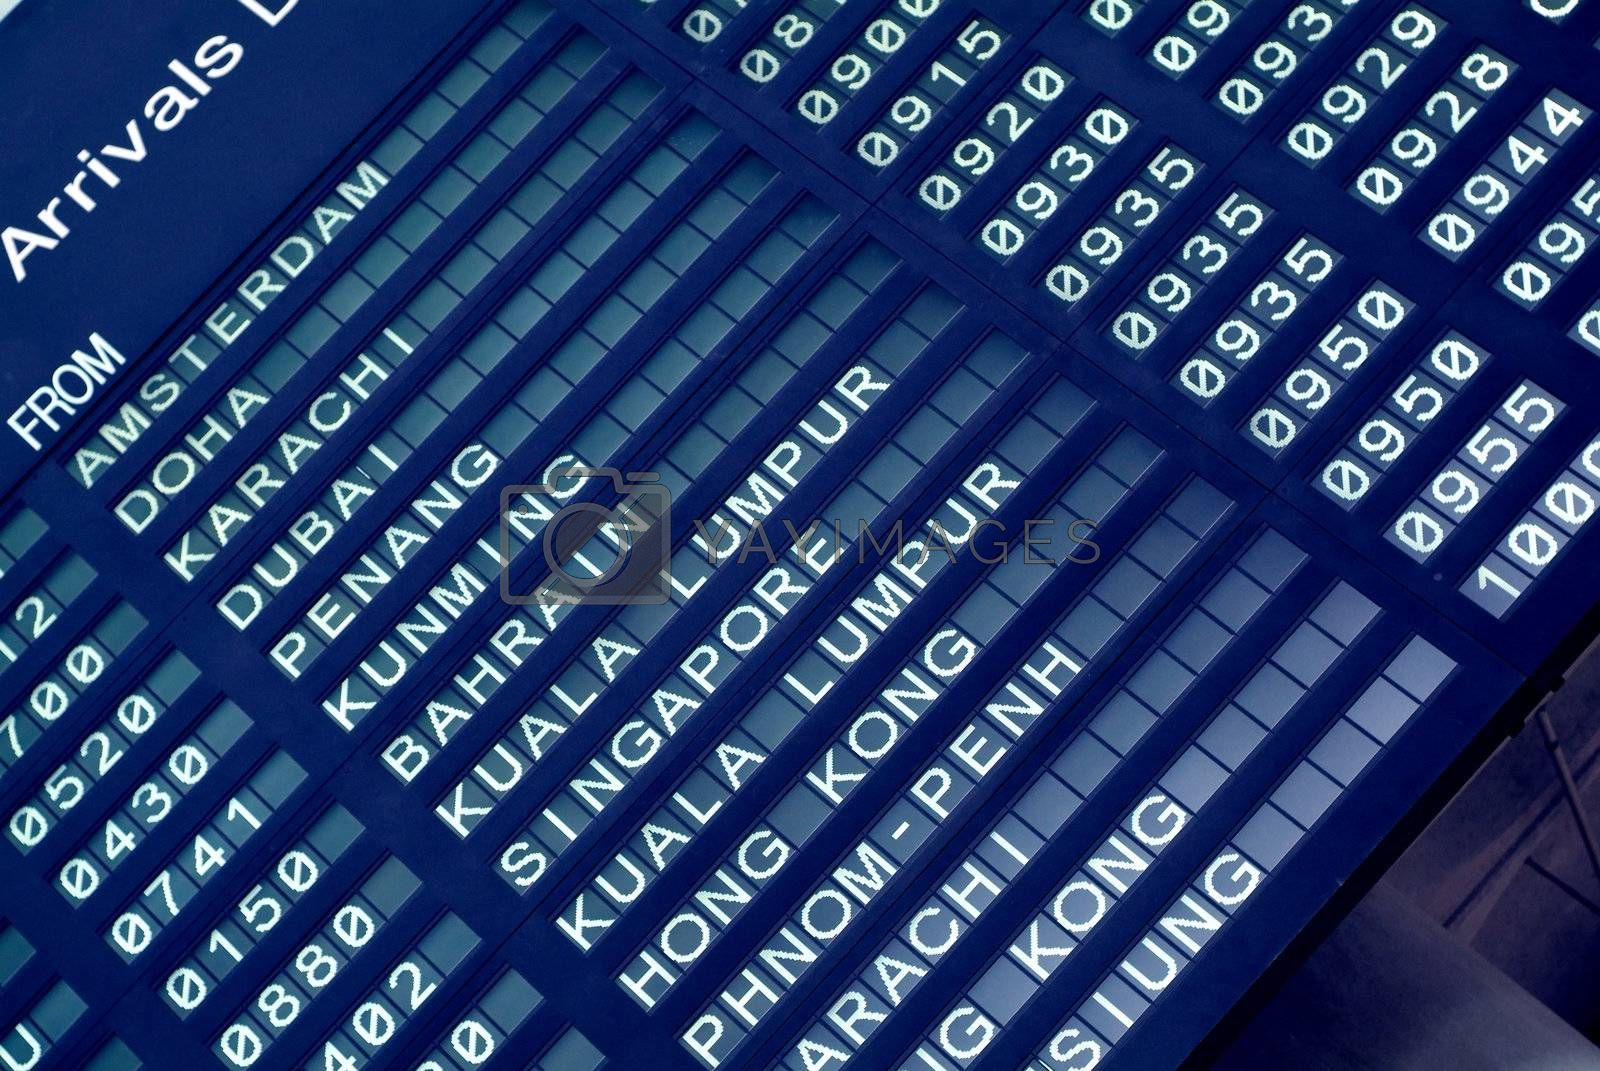 Arrival board at an airport by epixx